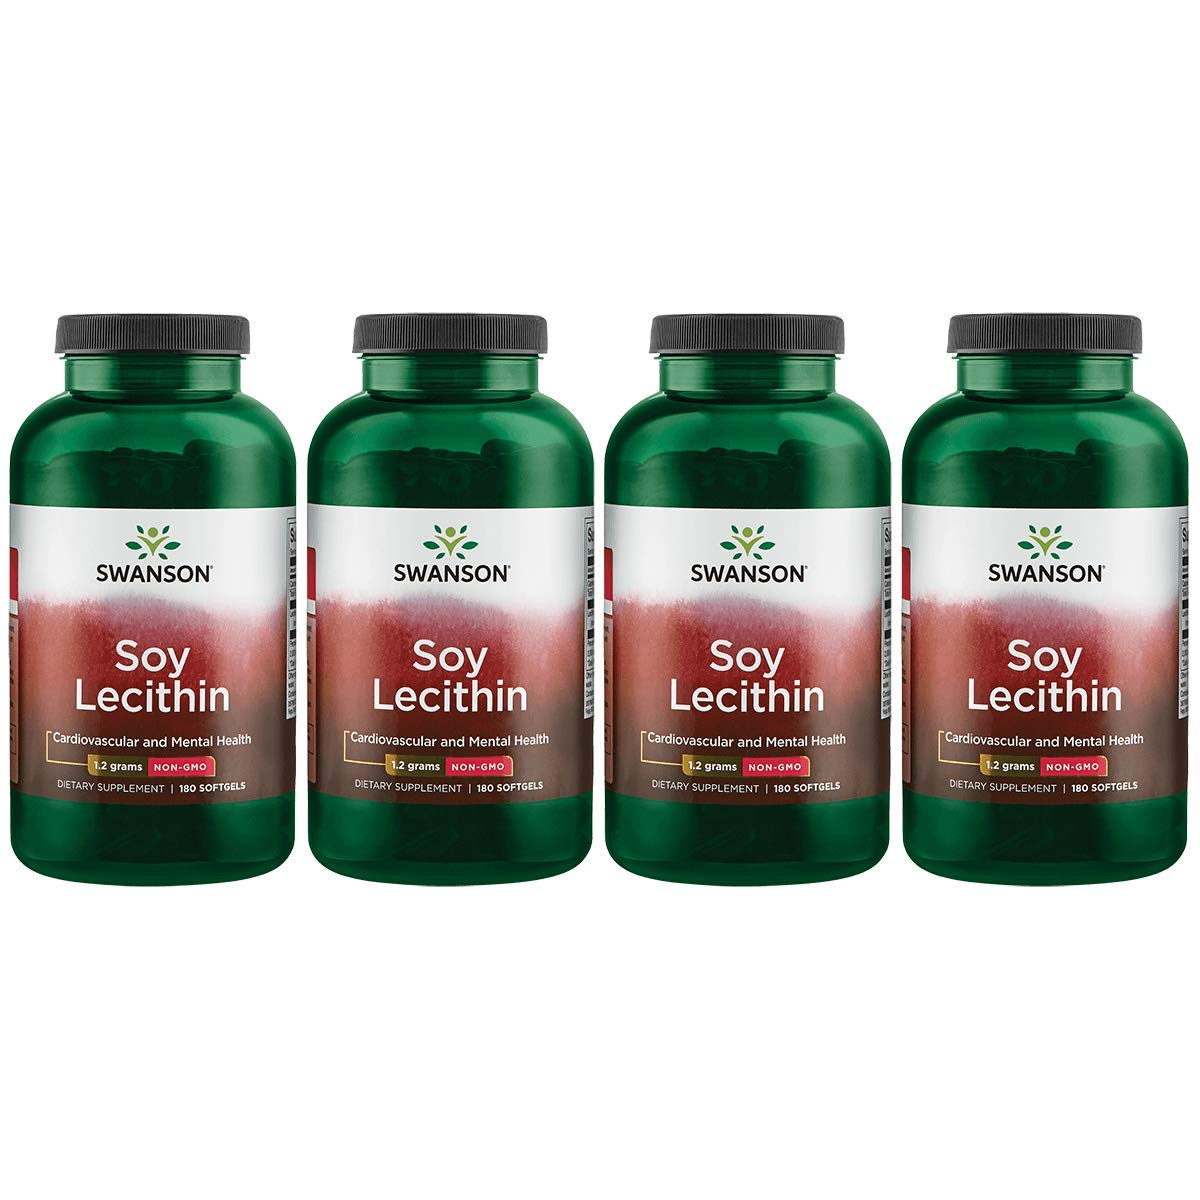 Swanson Soy Lecithin Non-GMO 1.2 g 180 Sgels 4 Pack